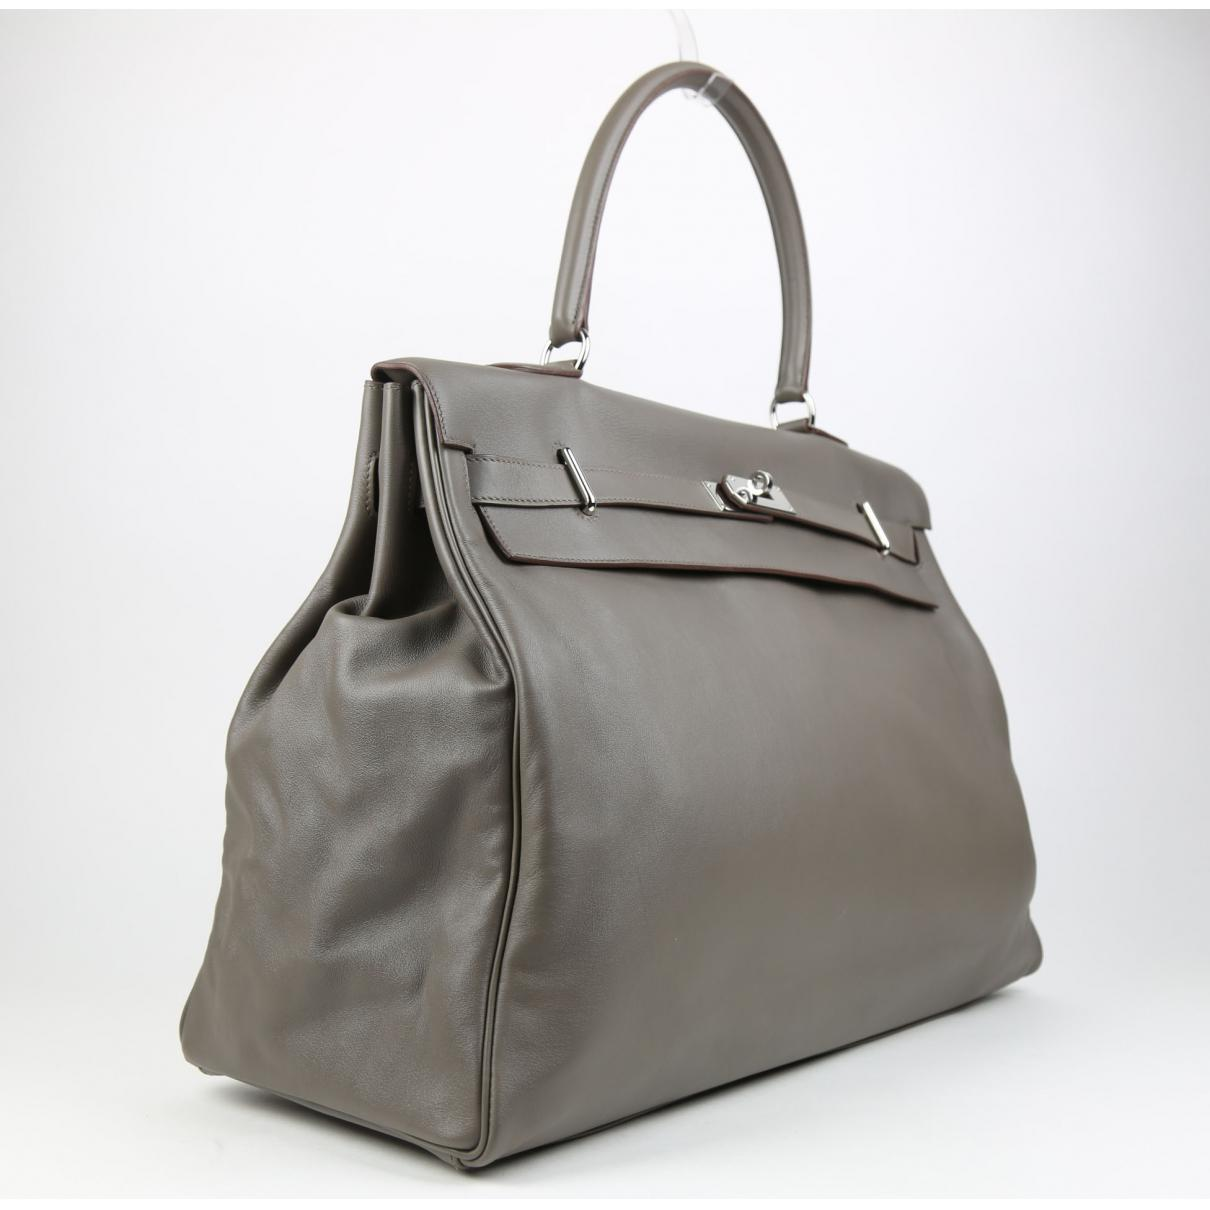 f5bbe5f75e97 ... wholesale lyst hermès kelly voyage leather travel bag in gray 569db  2206a